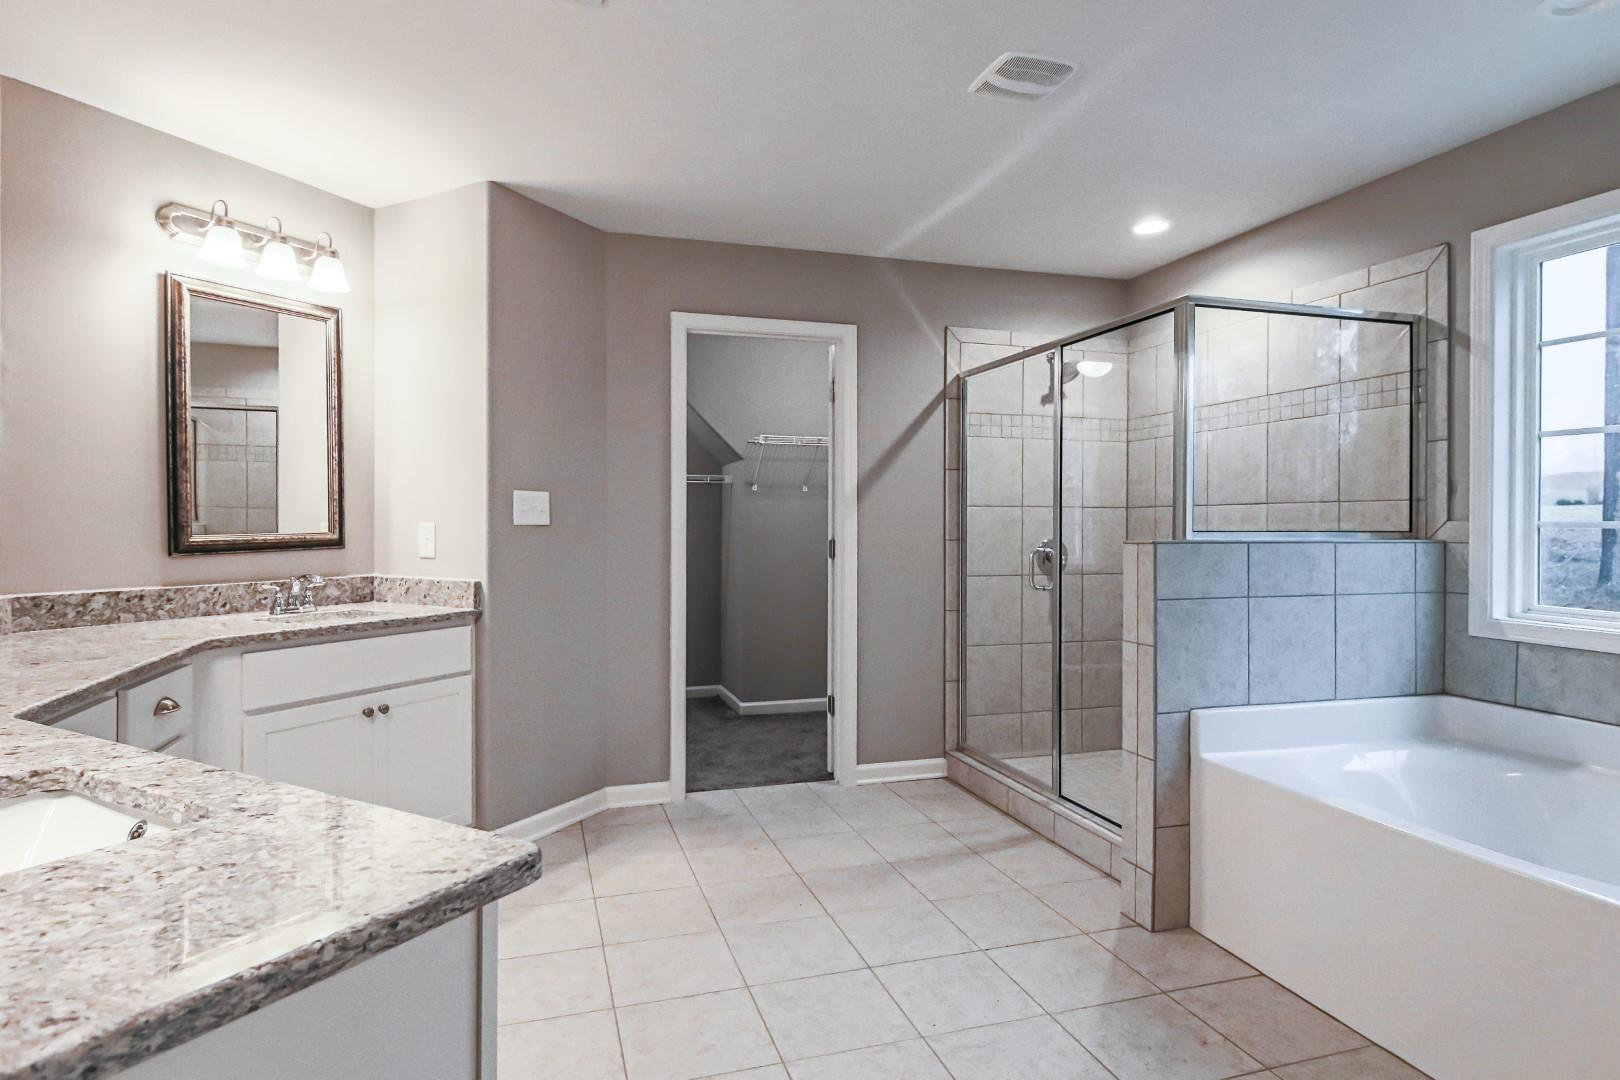 Bathroom featured in the Magnolia By Hughston Homes in Columbus, GA